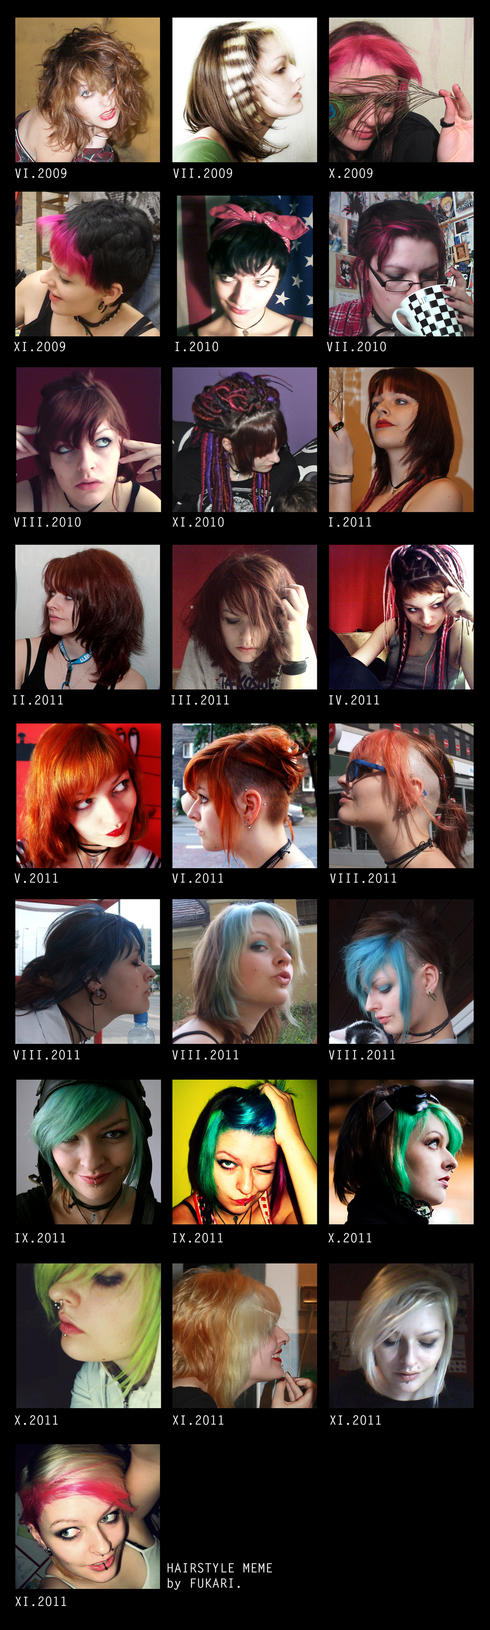 hairstyle meme 2009-2011 by Fukari